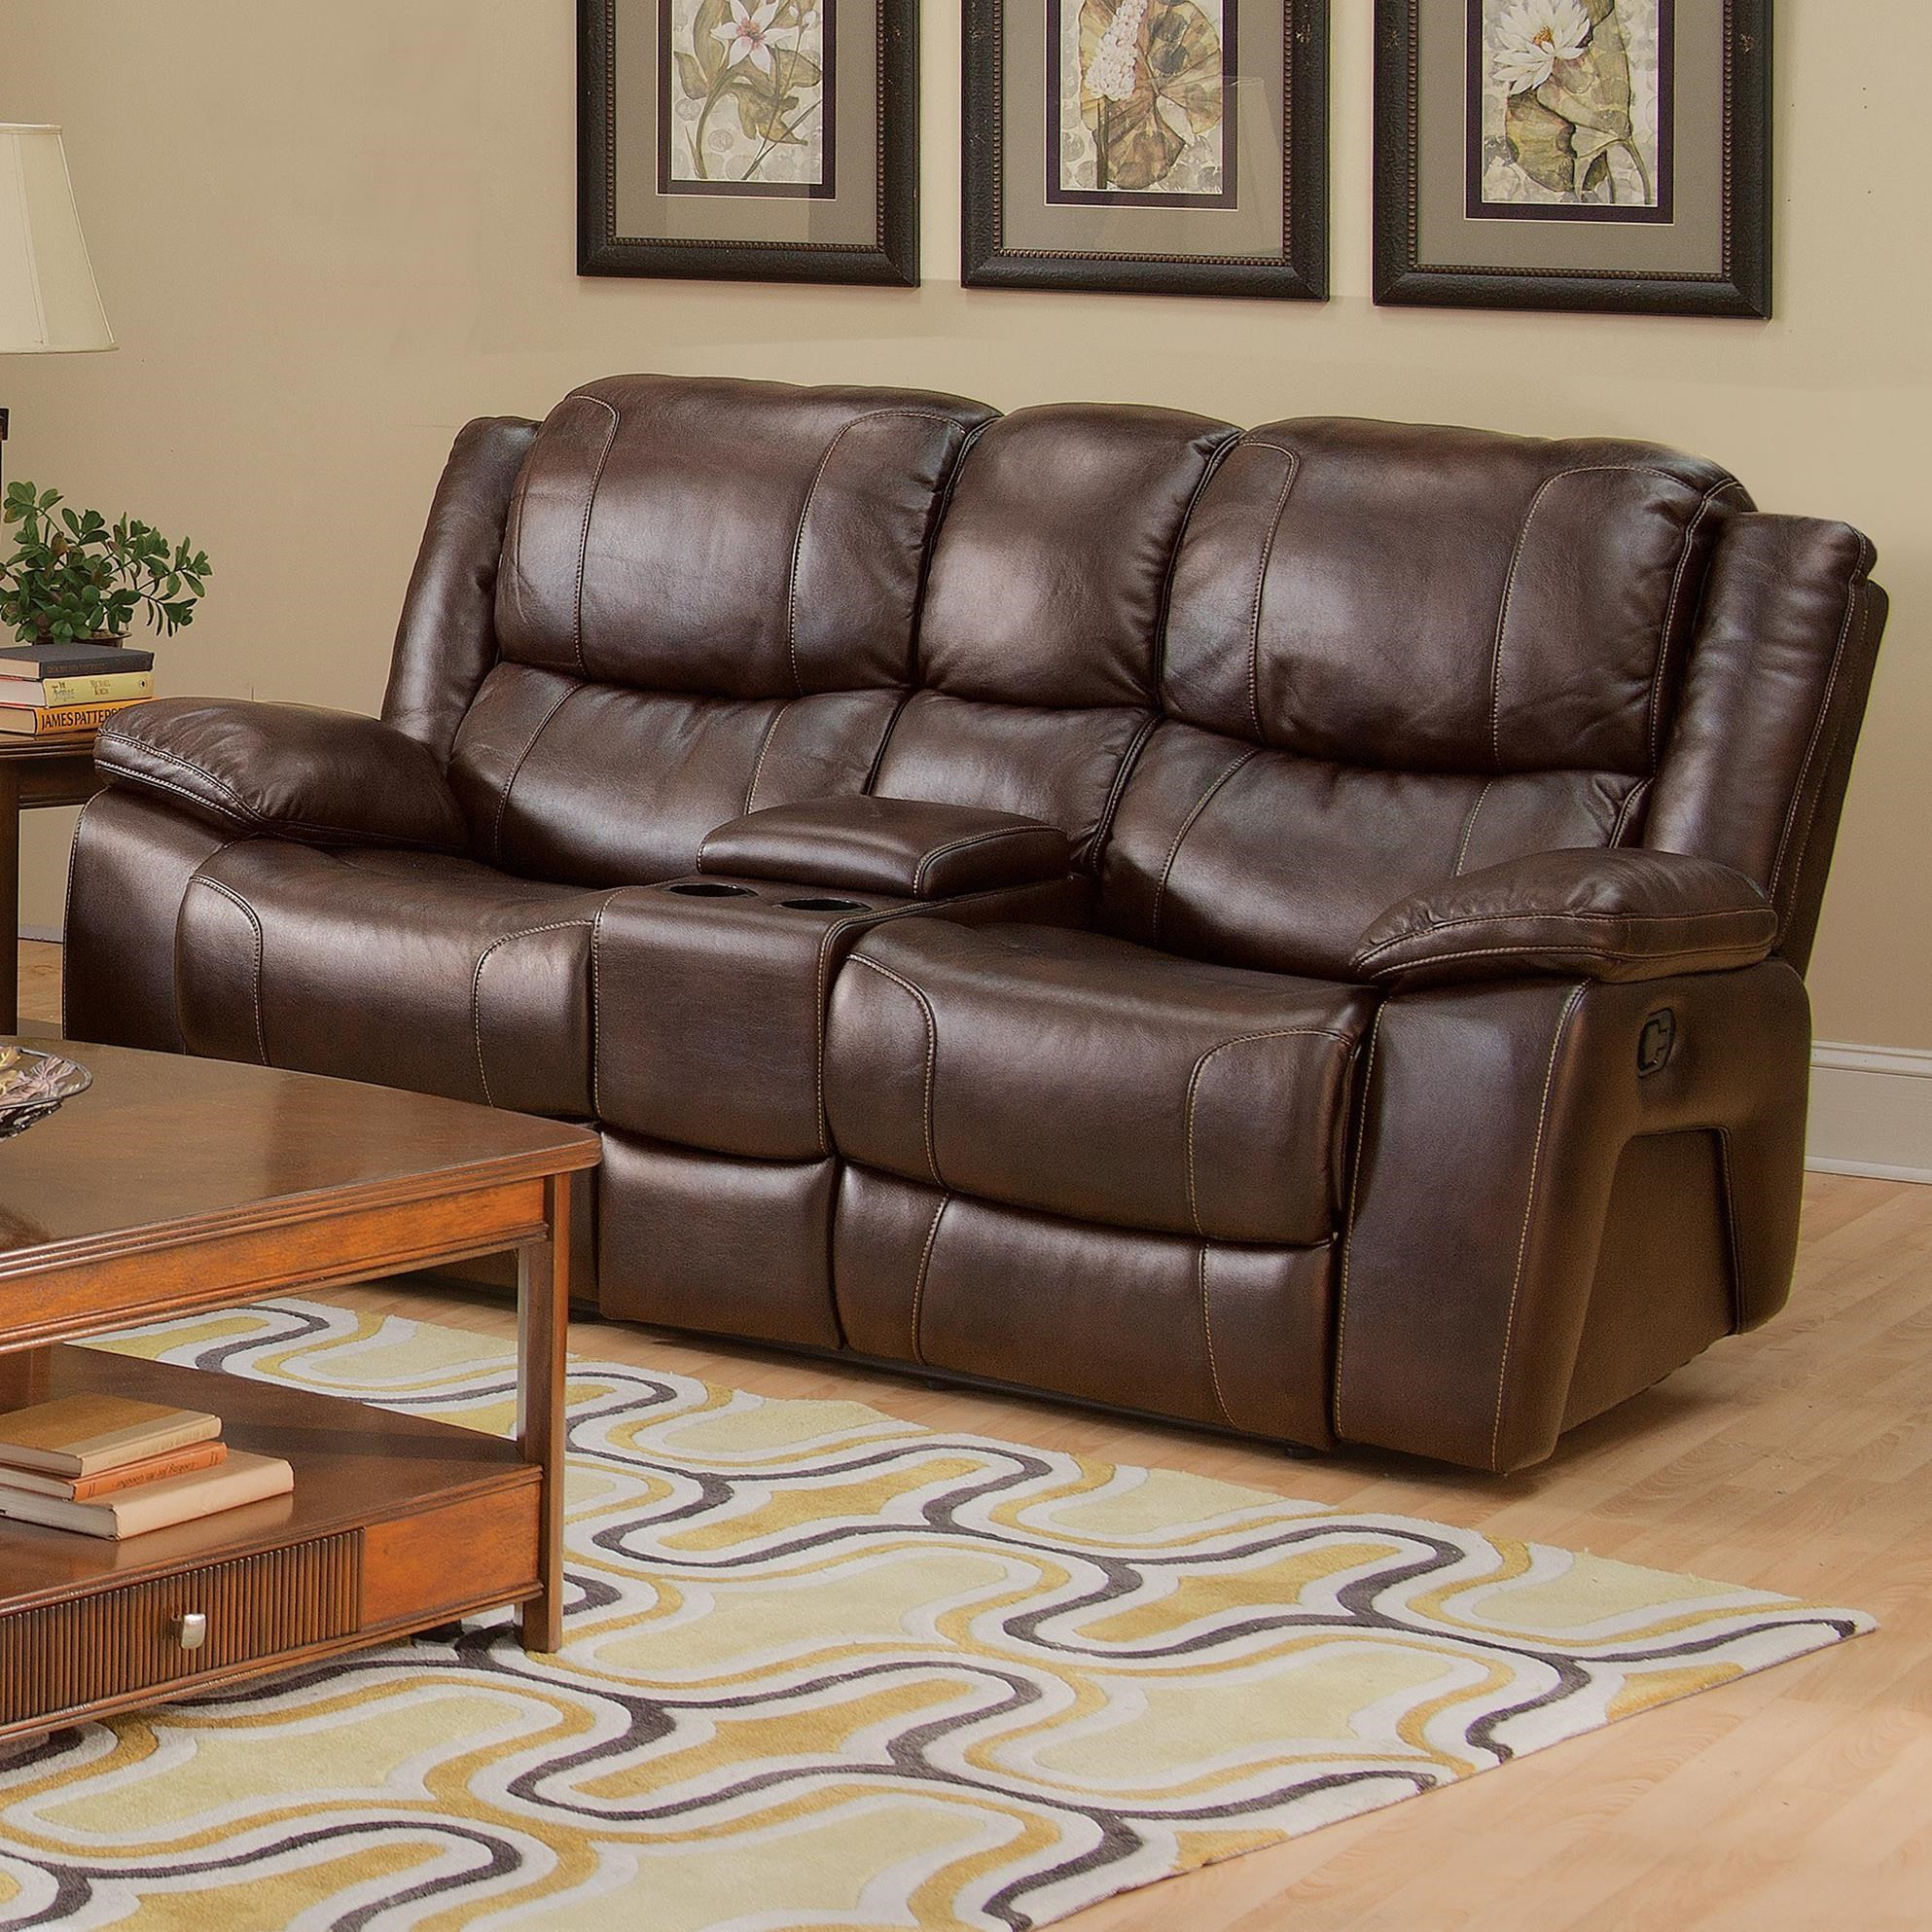 Reclining Loveseat May Not Represent Features Indicated  sc 1 st  Dunk u0026 Bright Furniture & New Classic Kenwood Casual Dual Recliner Console Loveseat with Cup ... islam-shia.org